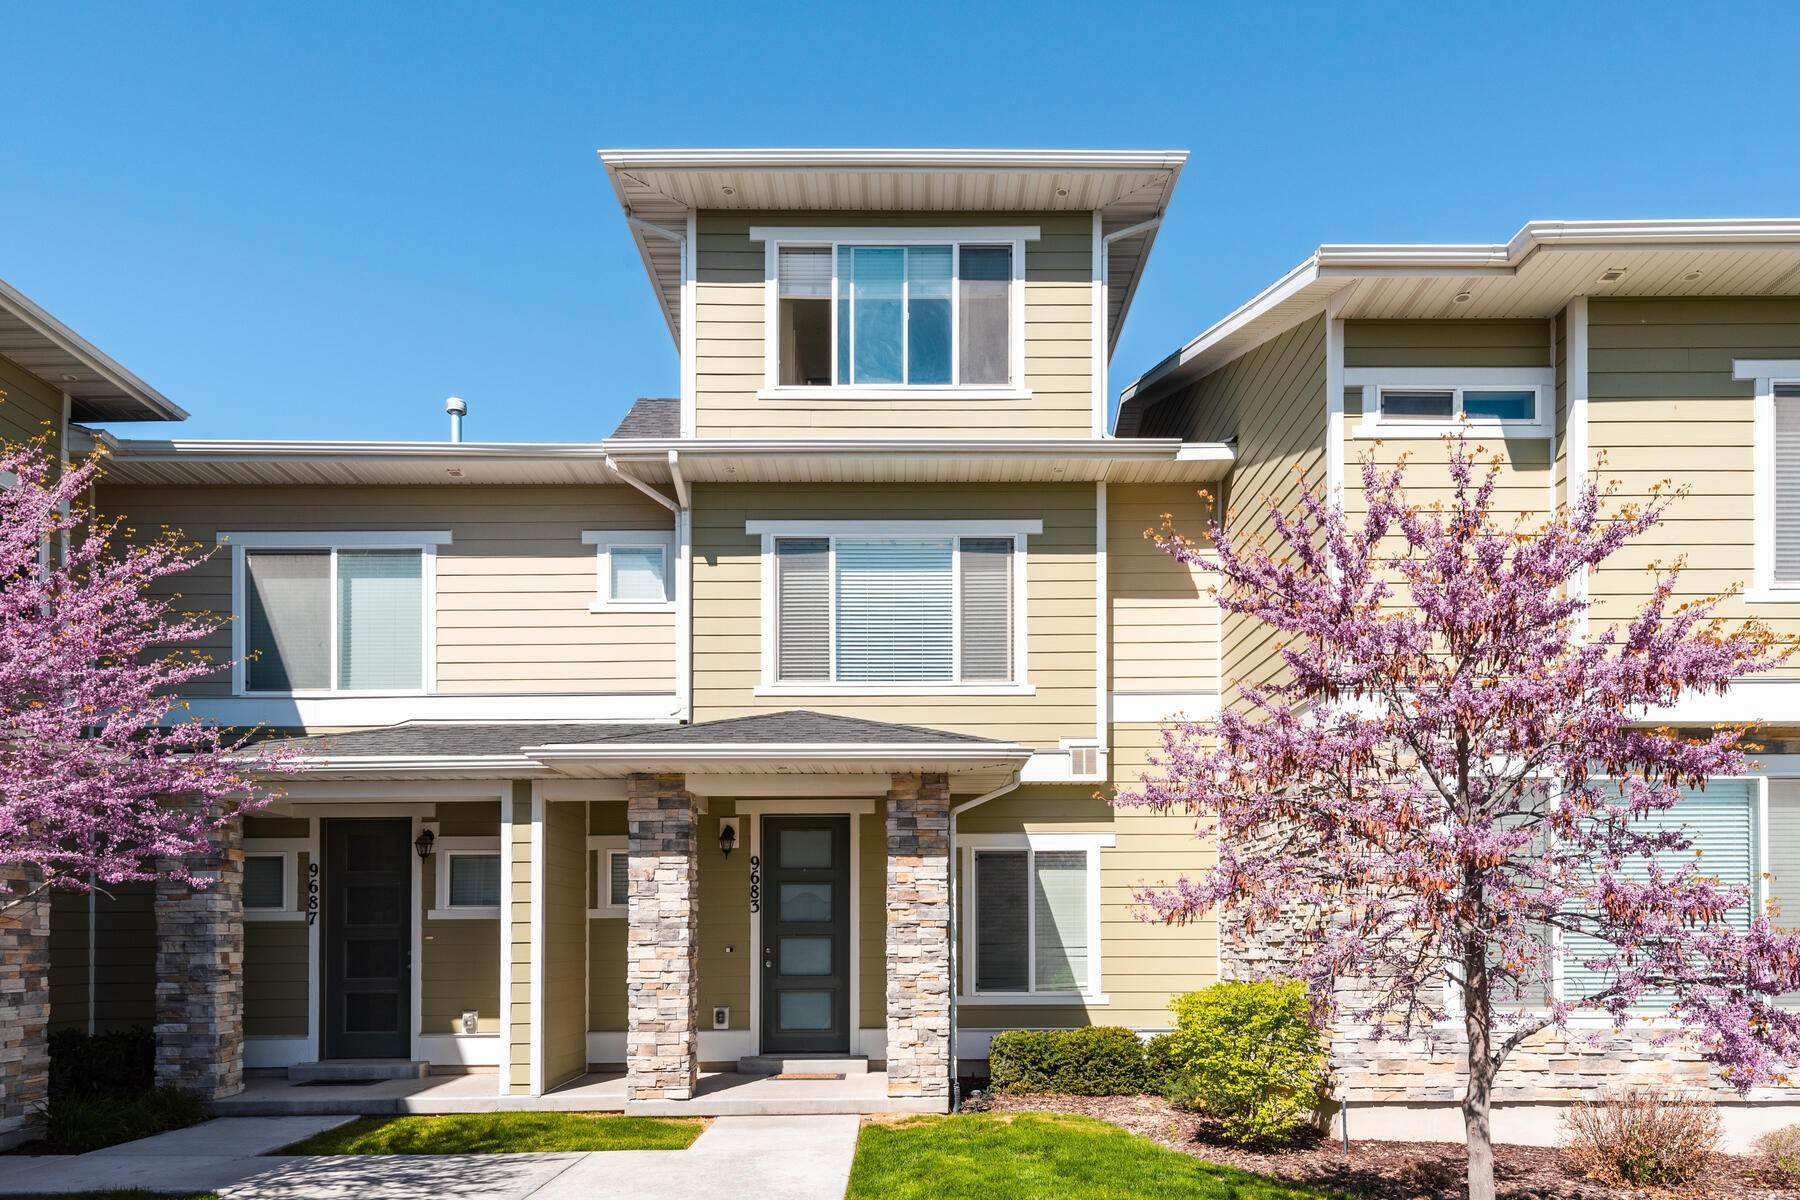 Single Family Homes for Sale at Not Your Typical Townhome 9683 Zakro Ln South Jordan, Utah 84095 United States